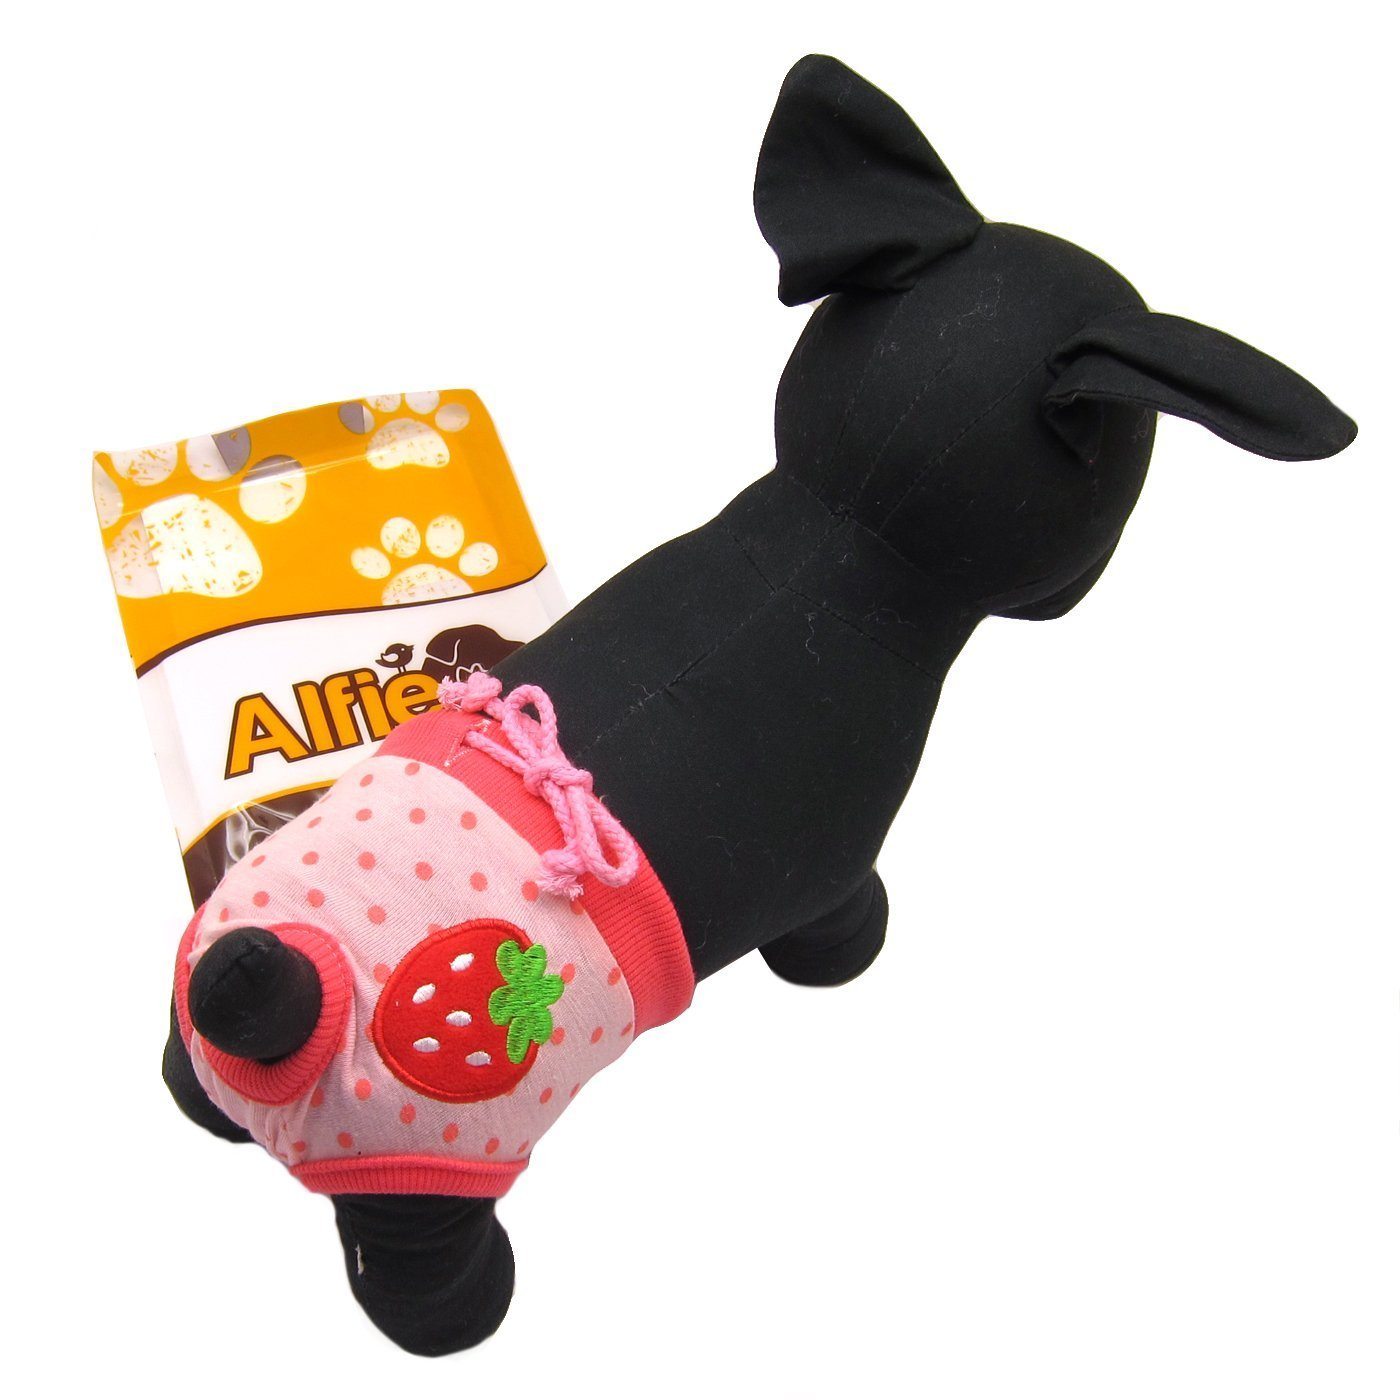 Color: Pink Zoe Diaper Dog Sanitary Pantie for Girl Dogs Alfie Pet Apparel Size: S